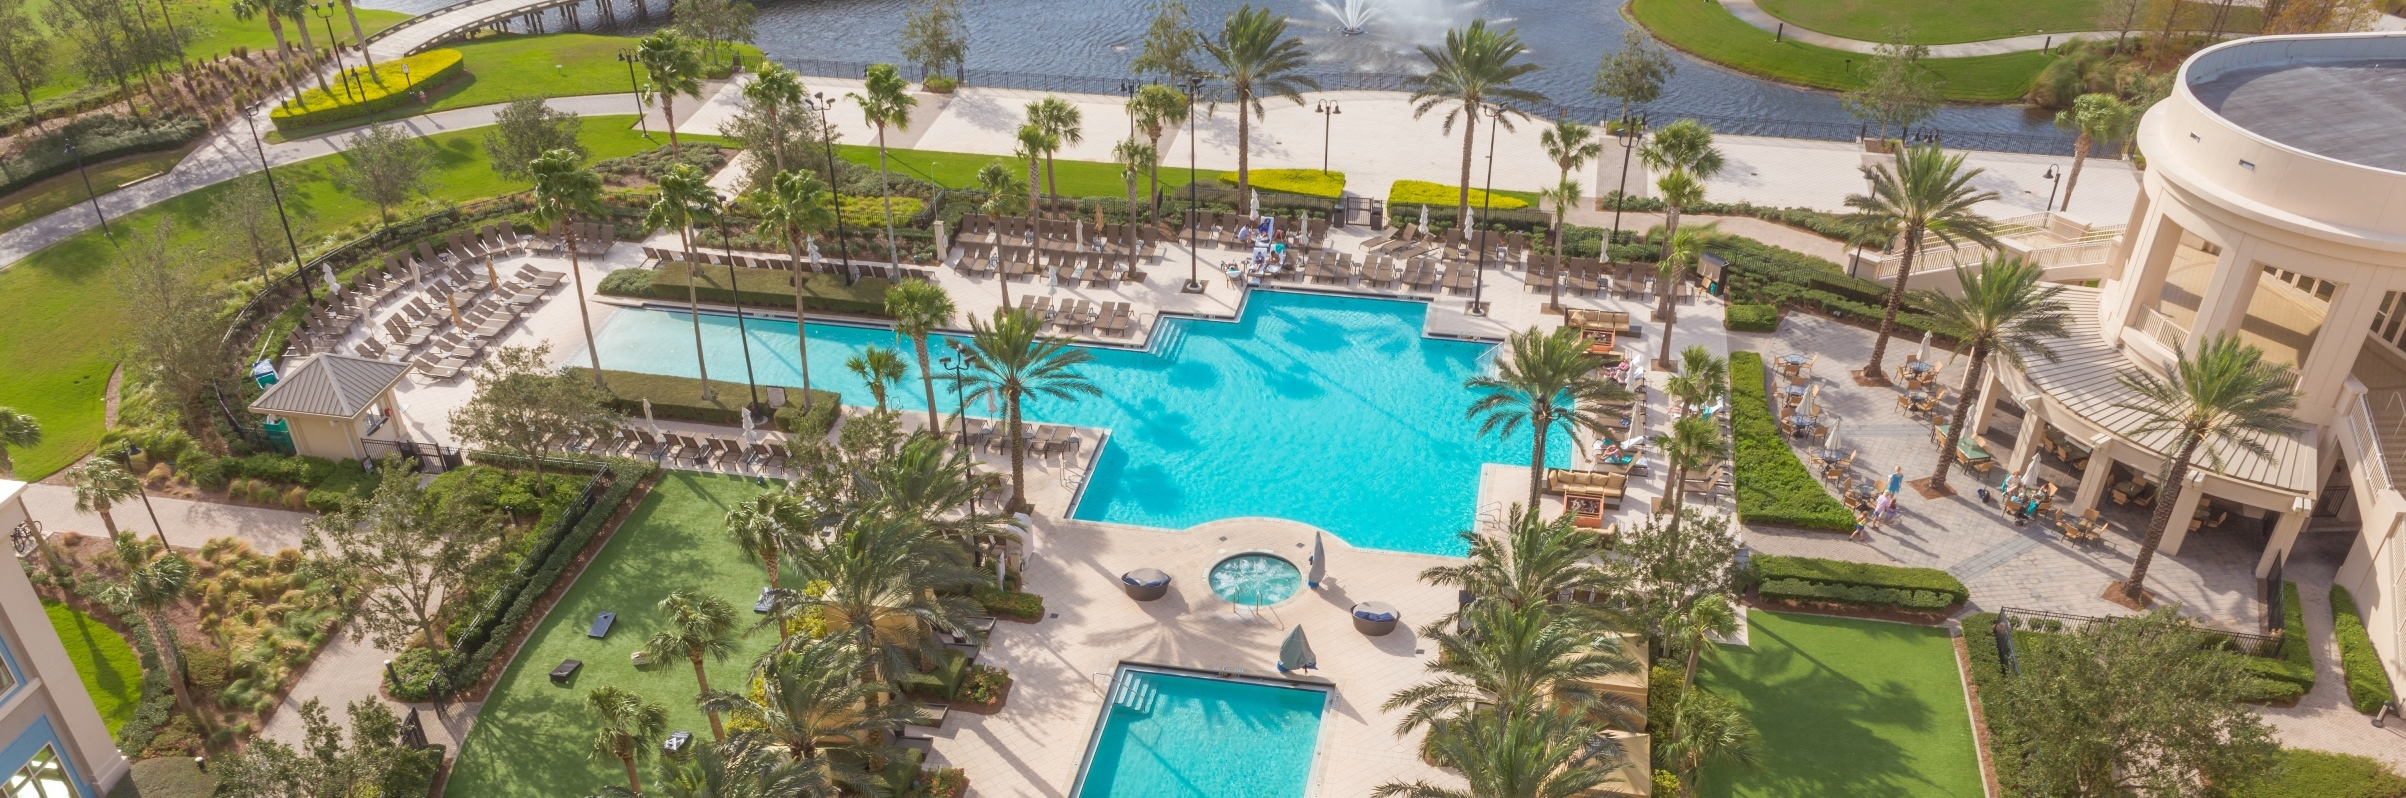 Summerblast At Waldorf Astoria Orlando Every Weekend This Summer Through  Labor Day